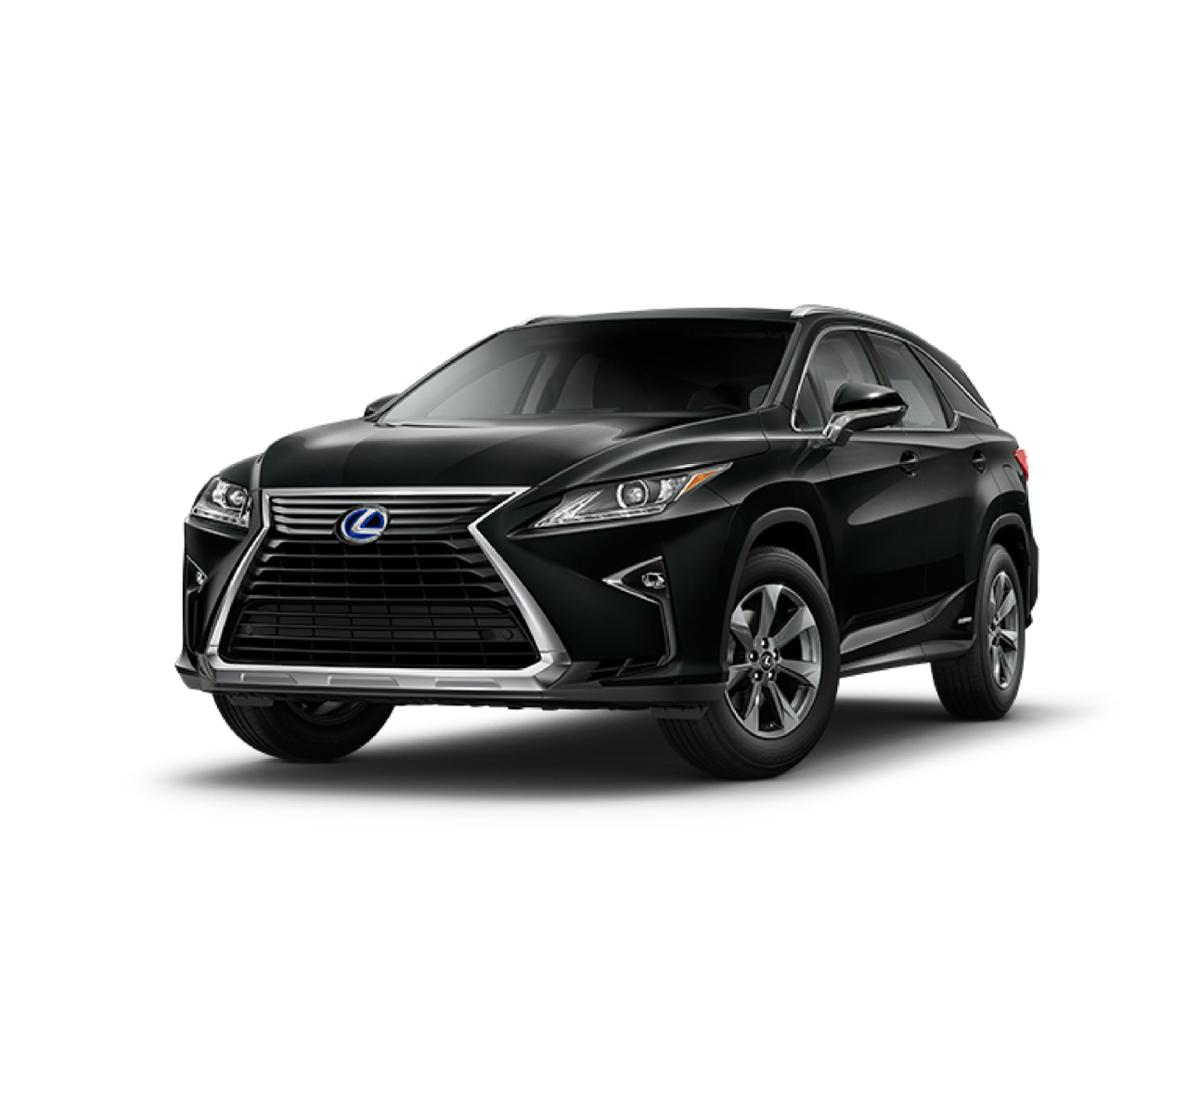 2019 Lexus RX 450hL Vehicle Photo in Fort Worth, TX 76132